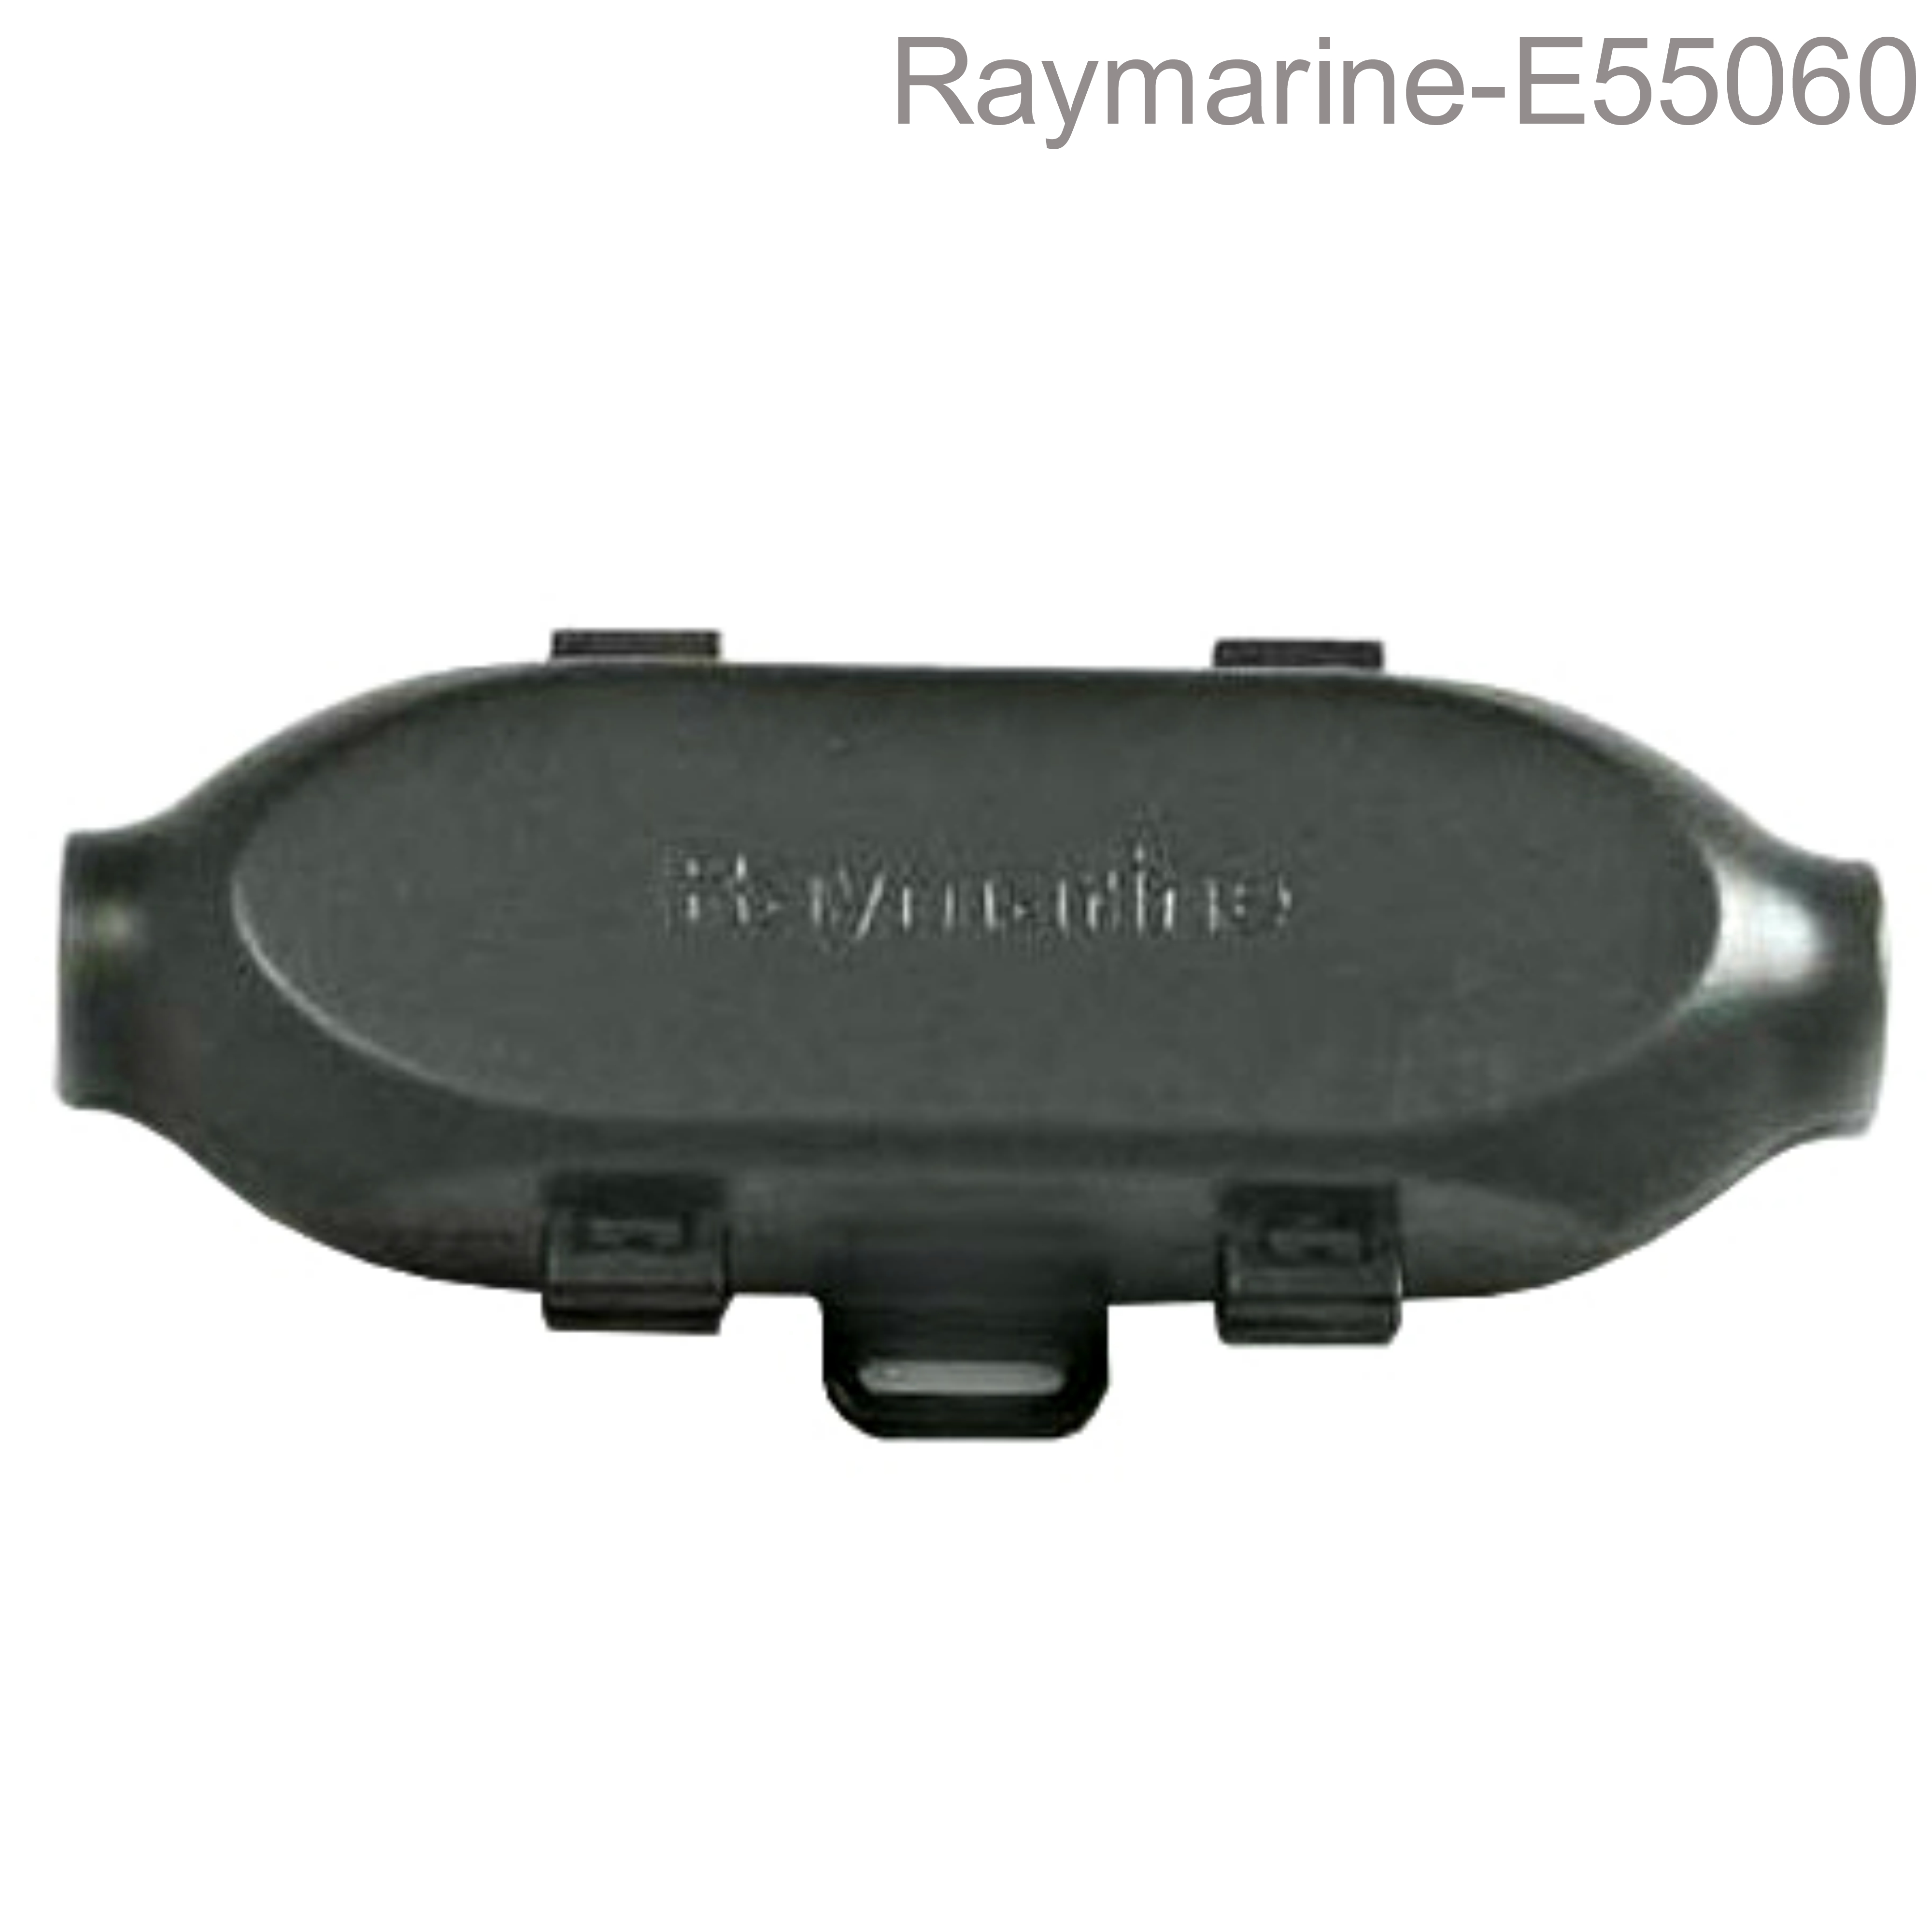 Raymarine-E55060|SeaTalk-HS Crossover Coupler|RJ45|For 2 Unit|Use E Series MFD